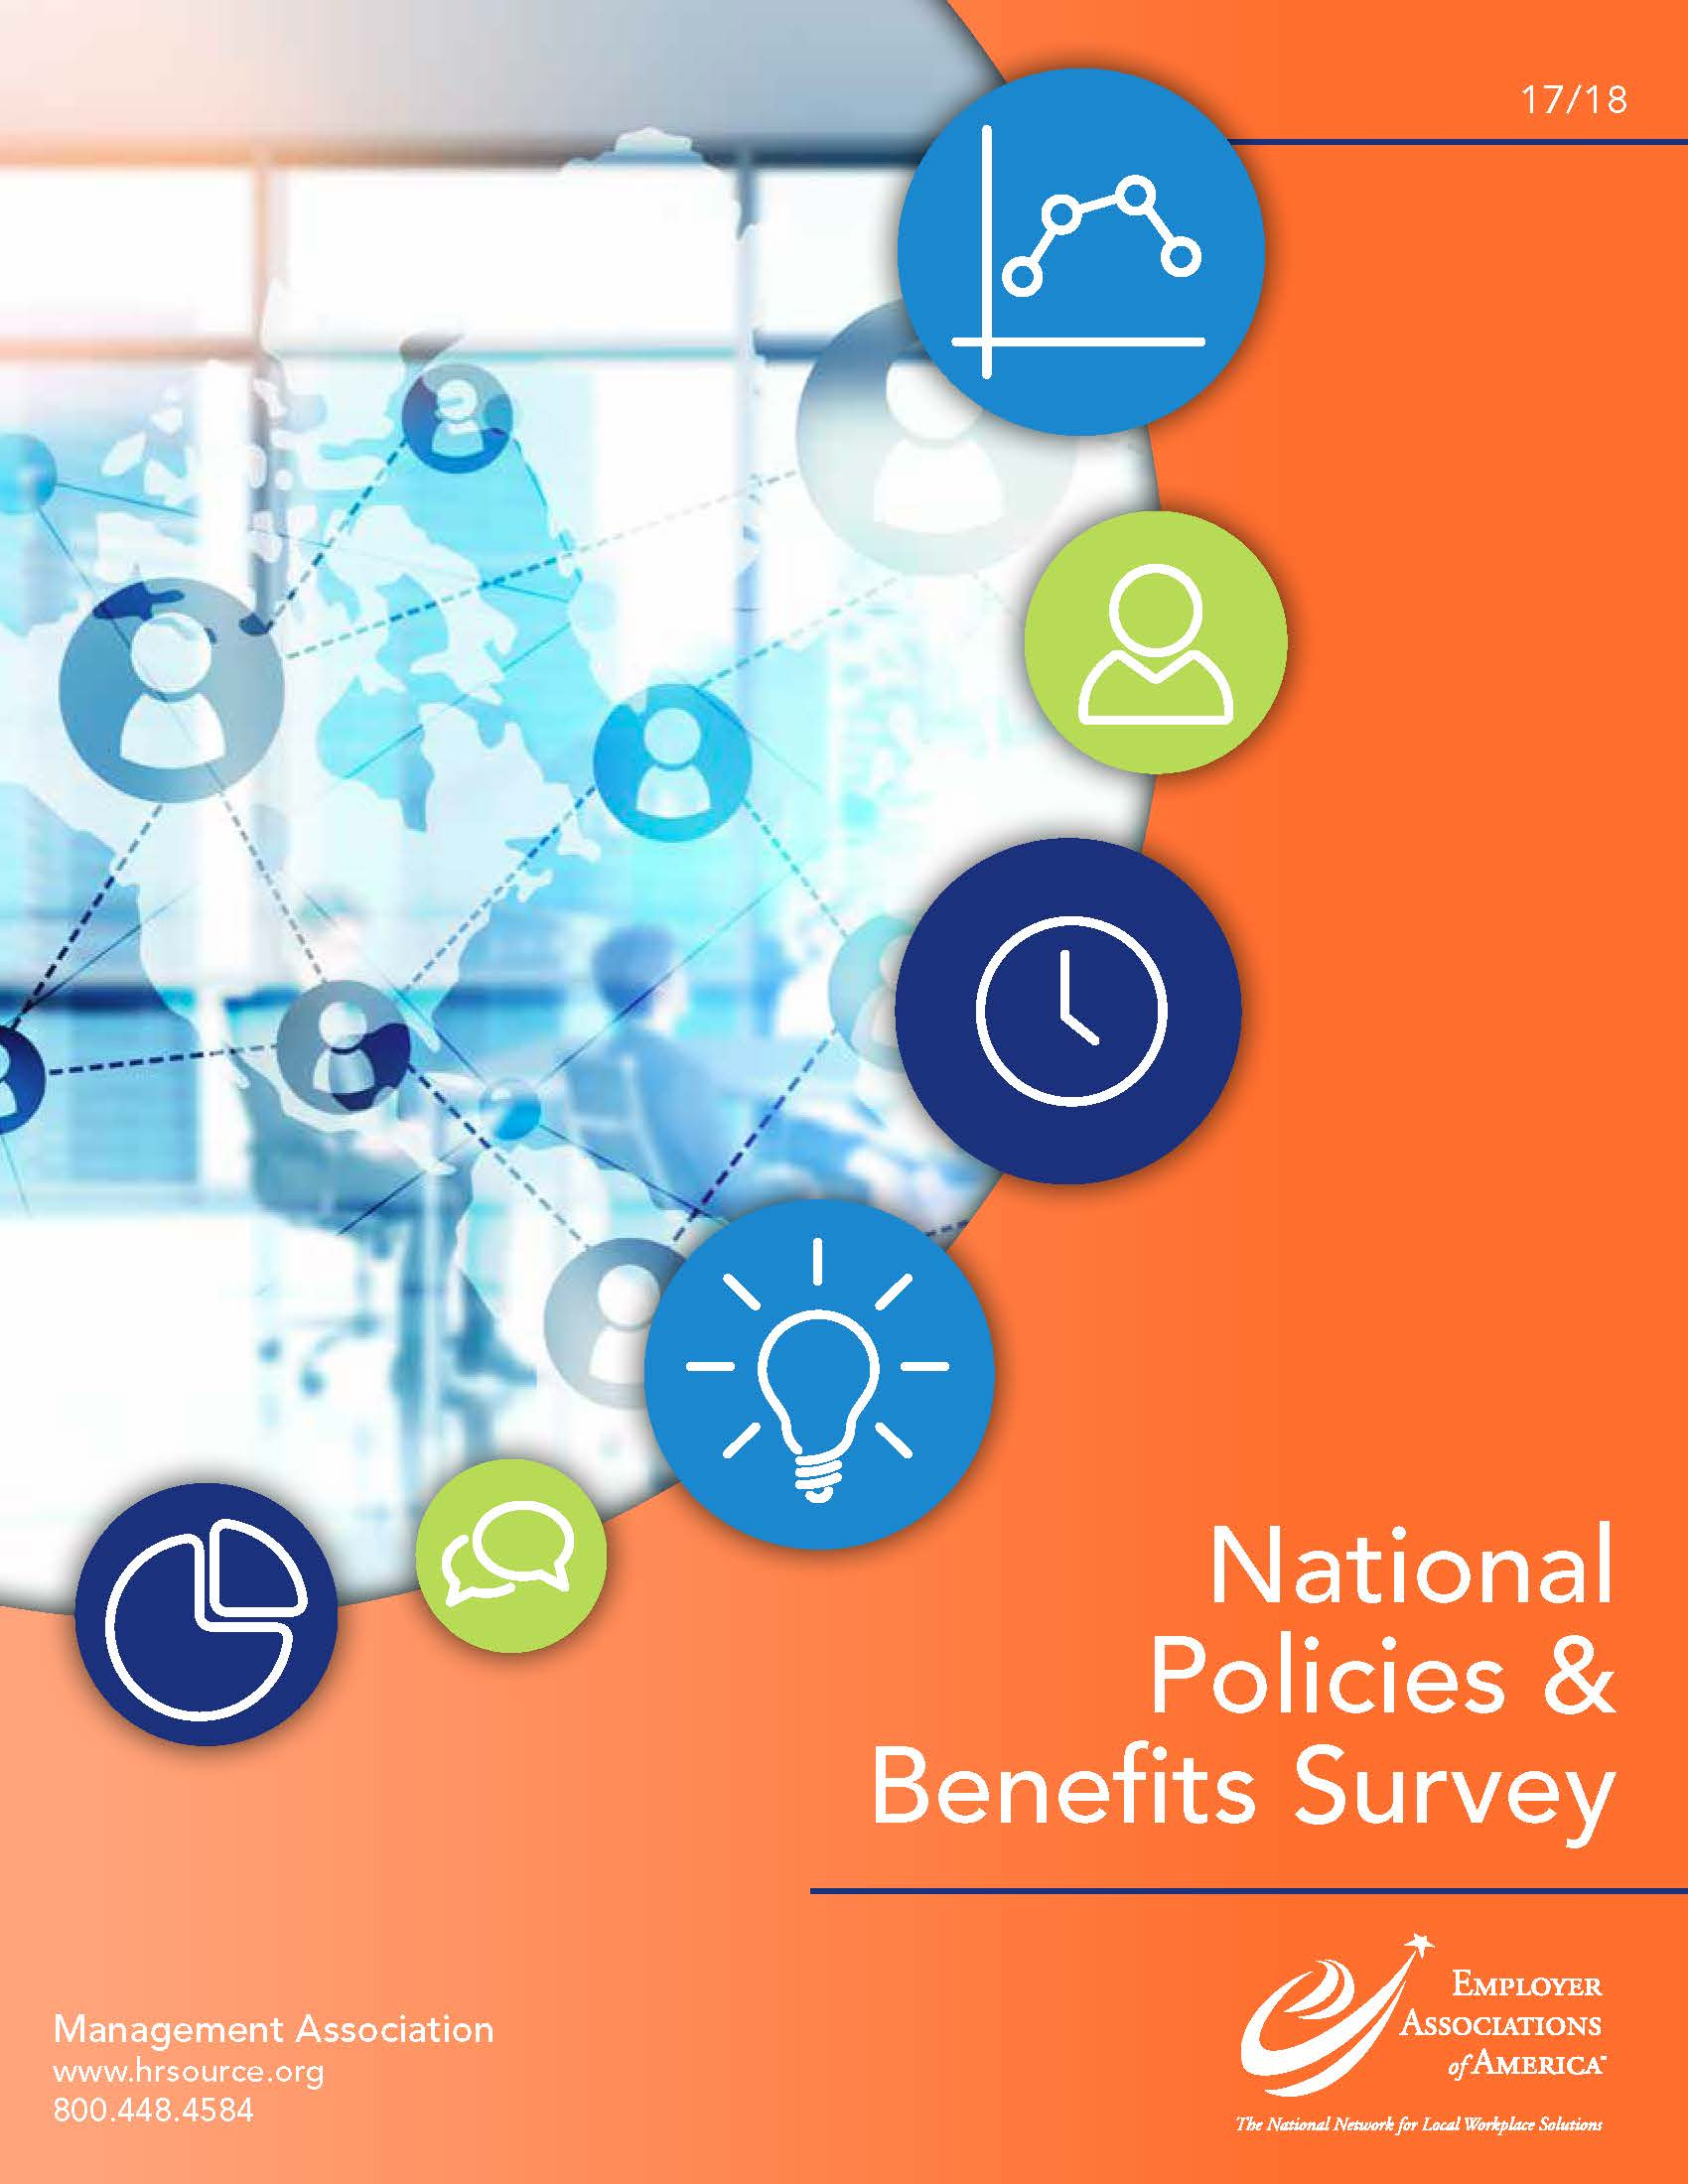 2017/2018 National Policies & Benefits Survey